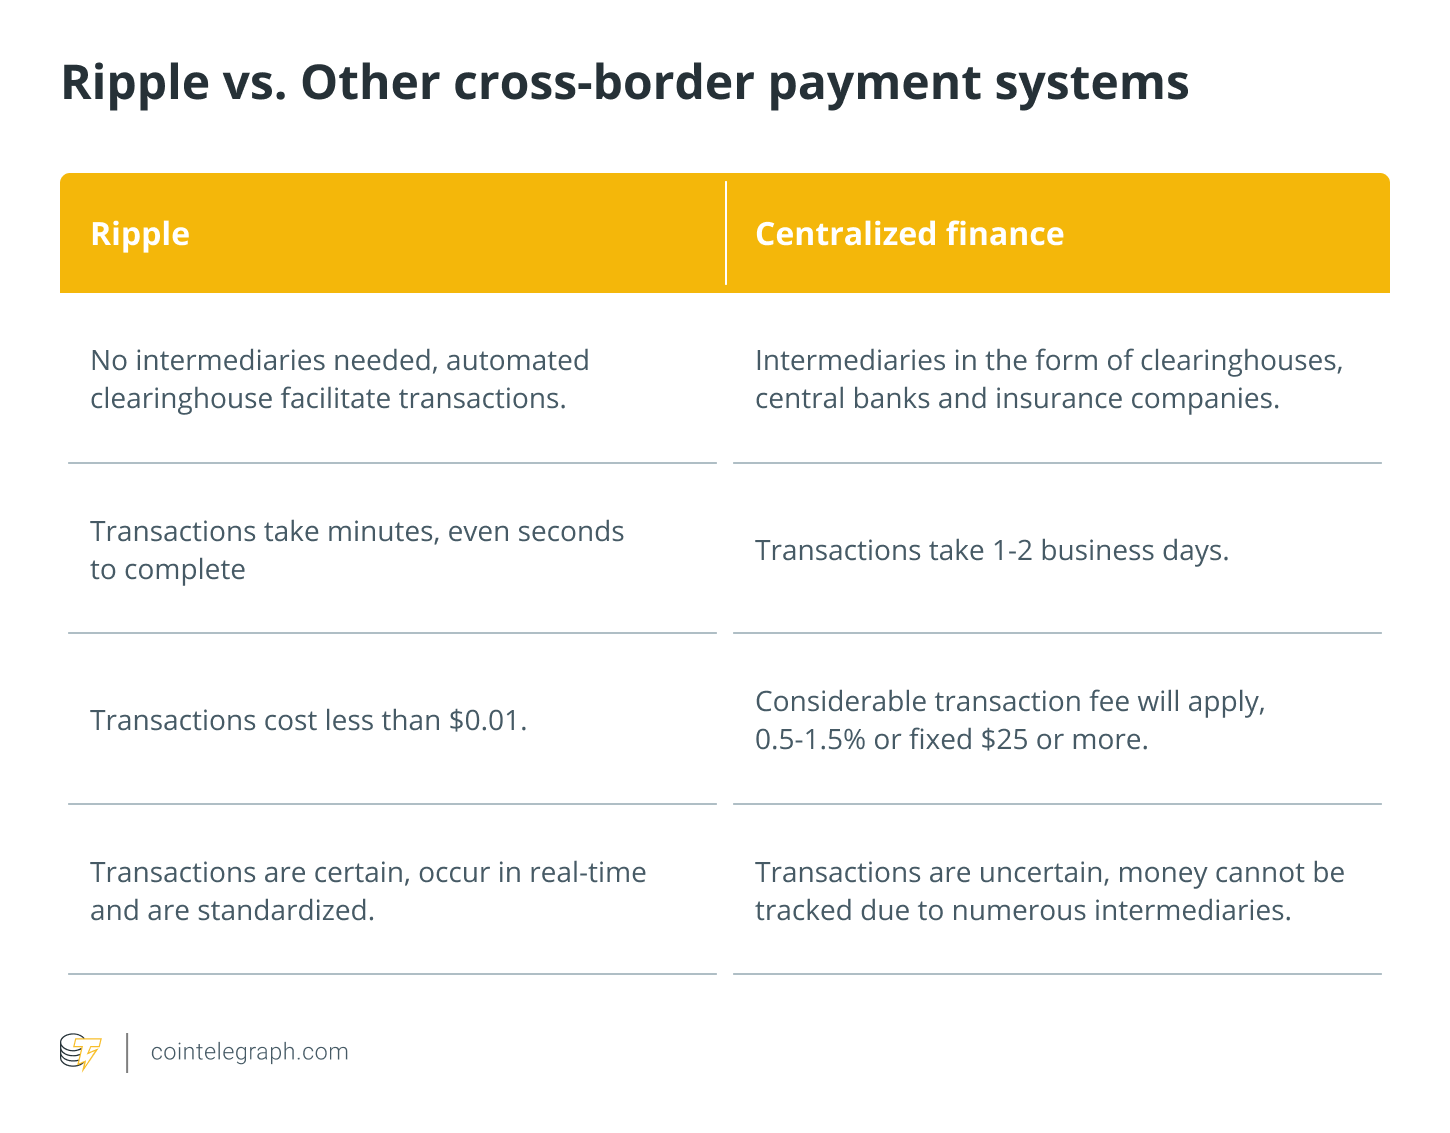 Ripple vs. Other cross-border payment systems